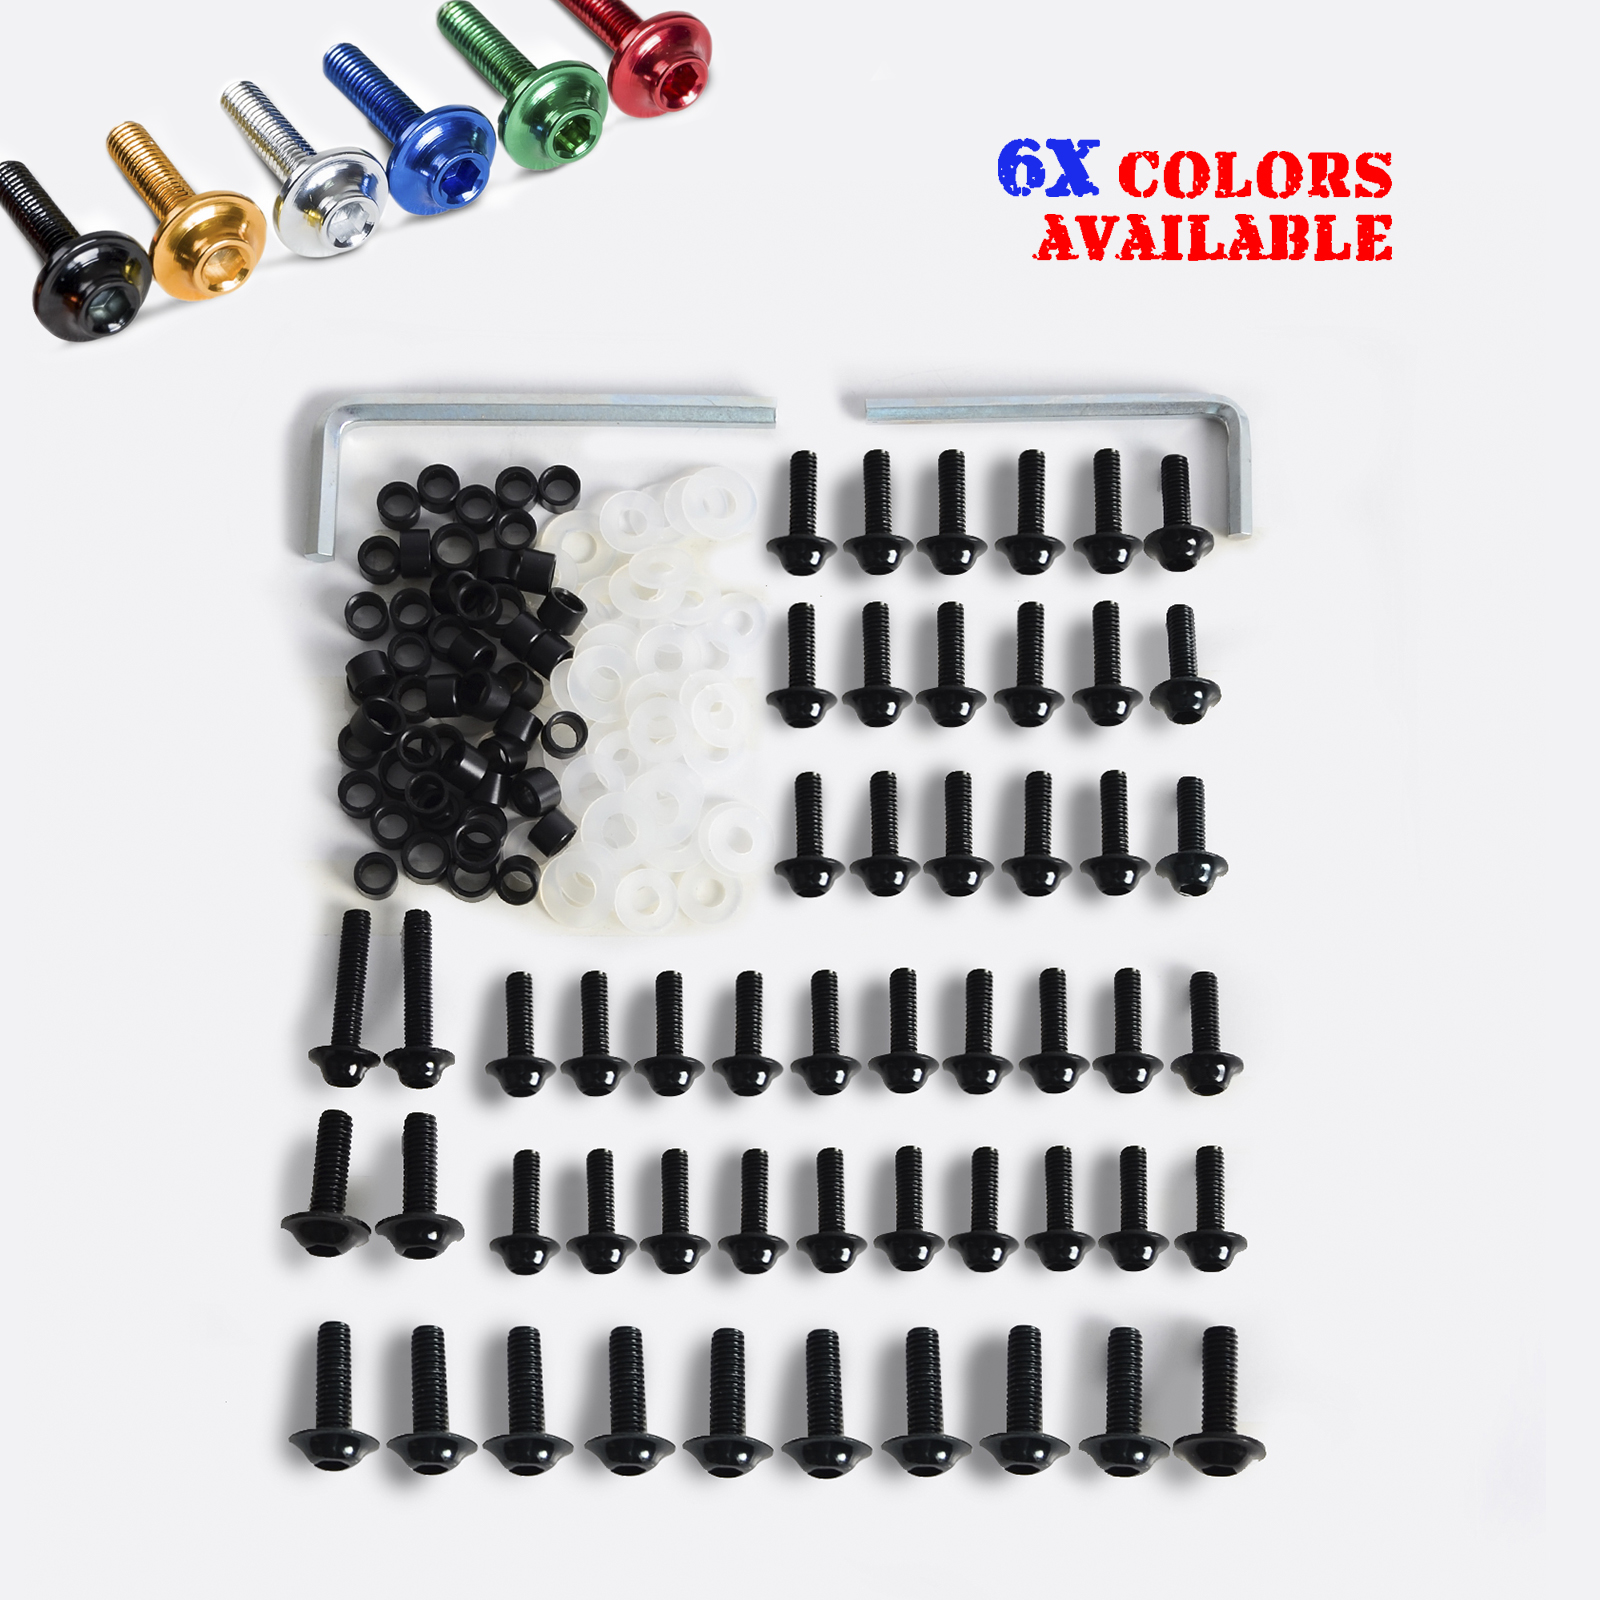 NICECNC Windsheild Windscreen Fairing Bolts Hardware Kit Fastener Clips Screws For Yamaha YZF R6 YZF-R6 1999-2002 Dirt Bikes